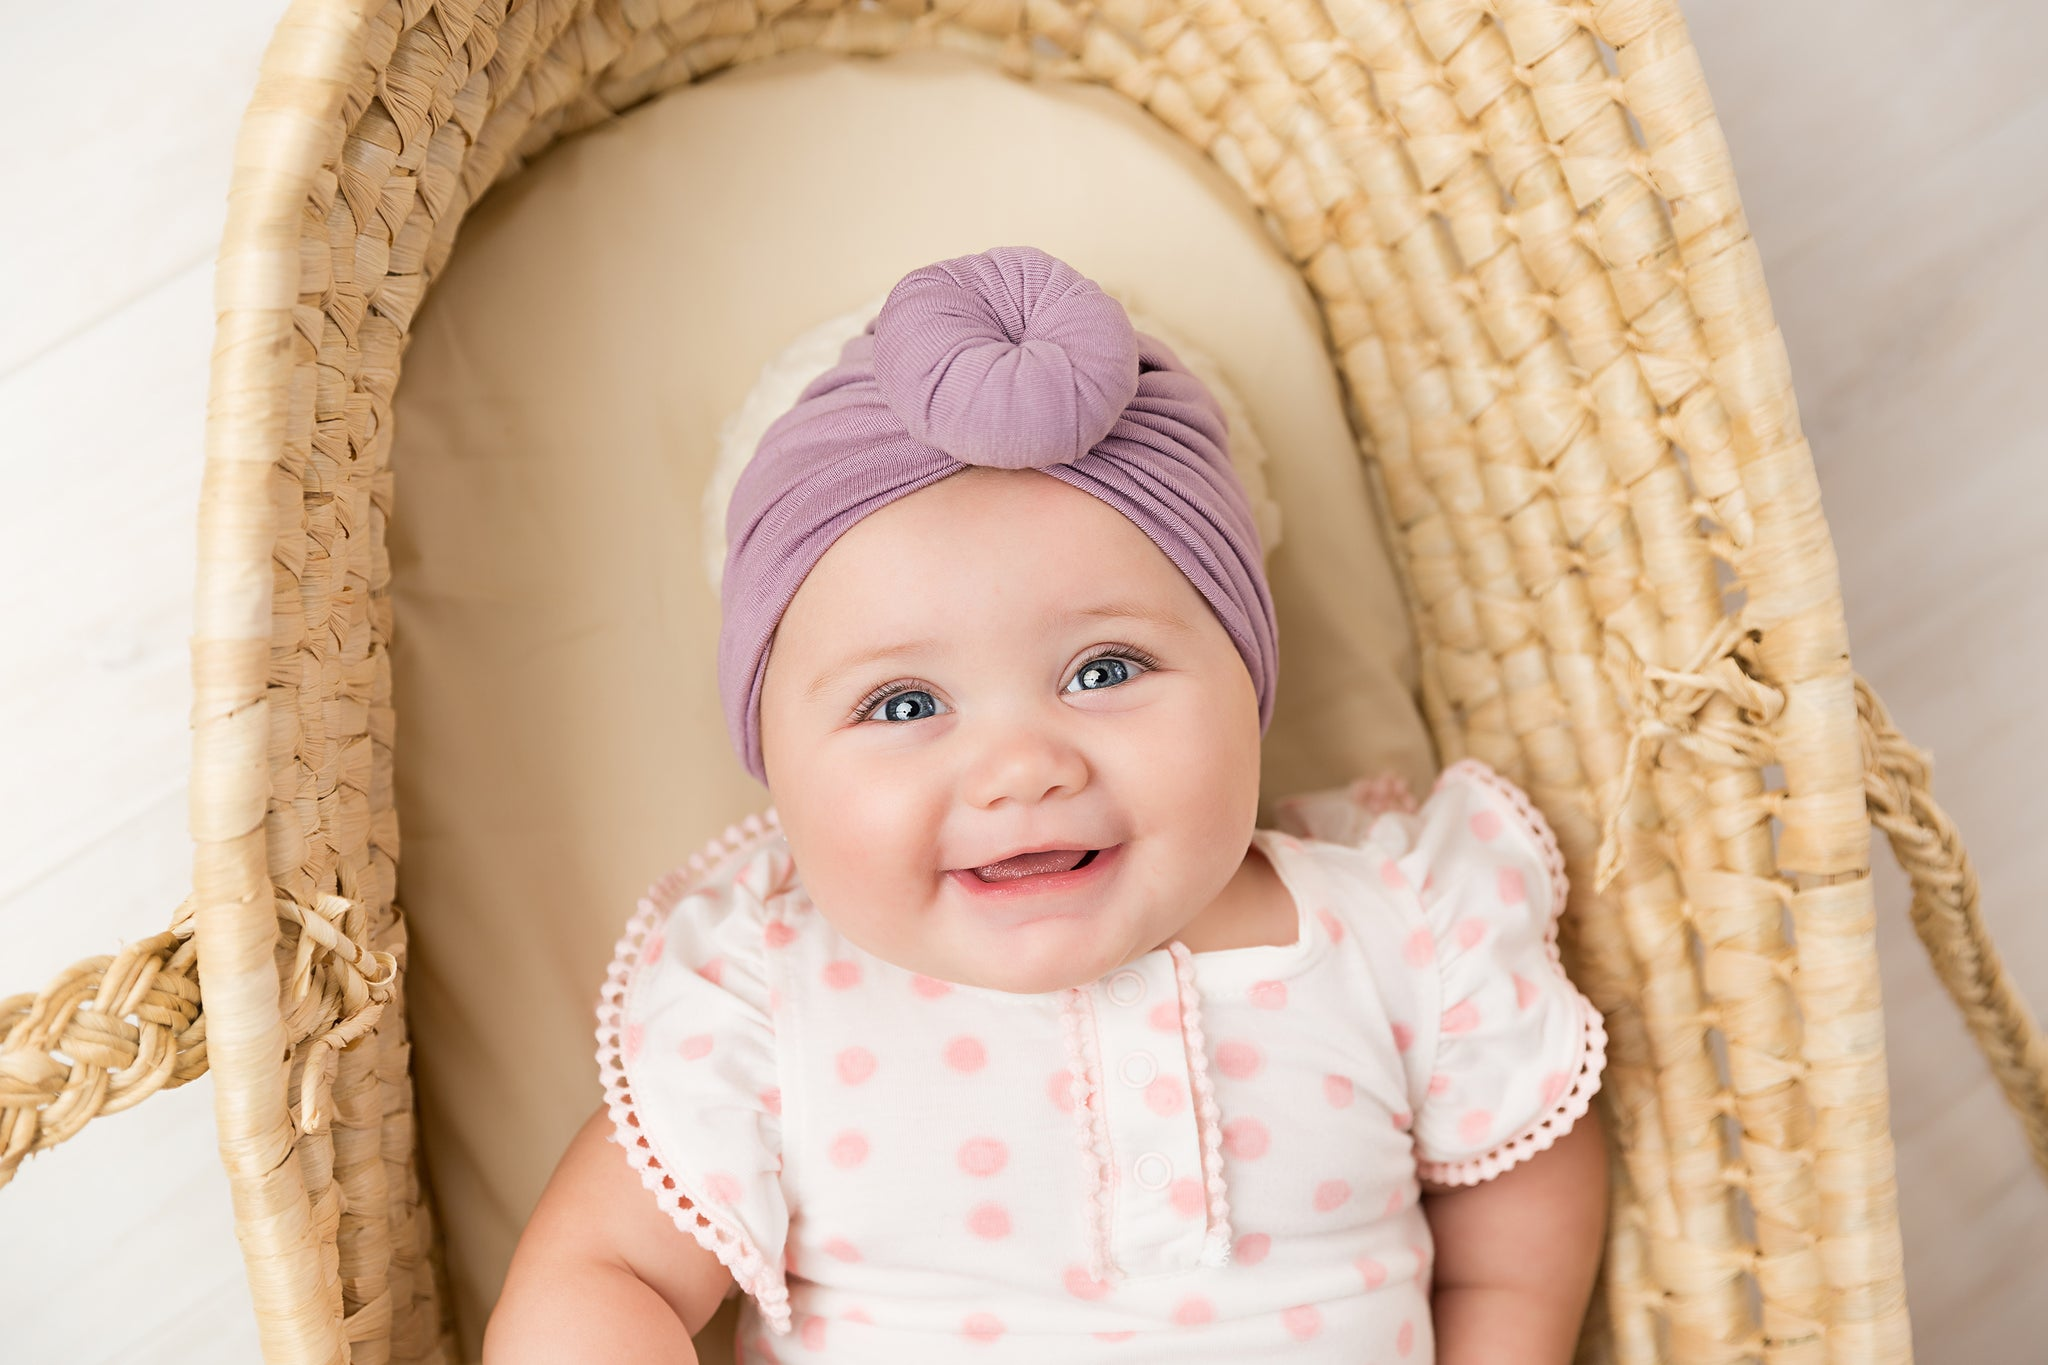 baby happy in crib and turban hat